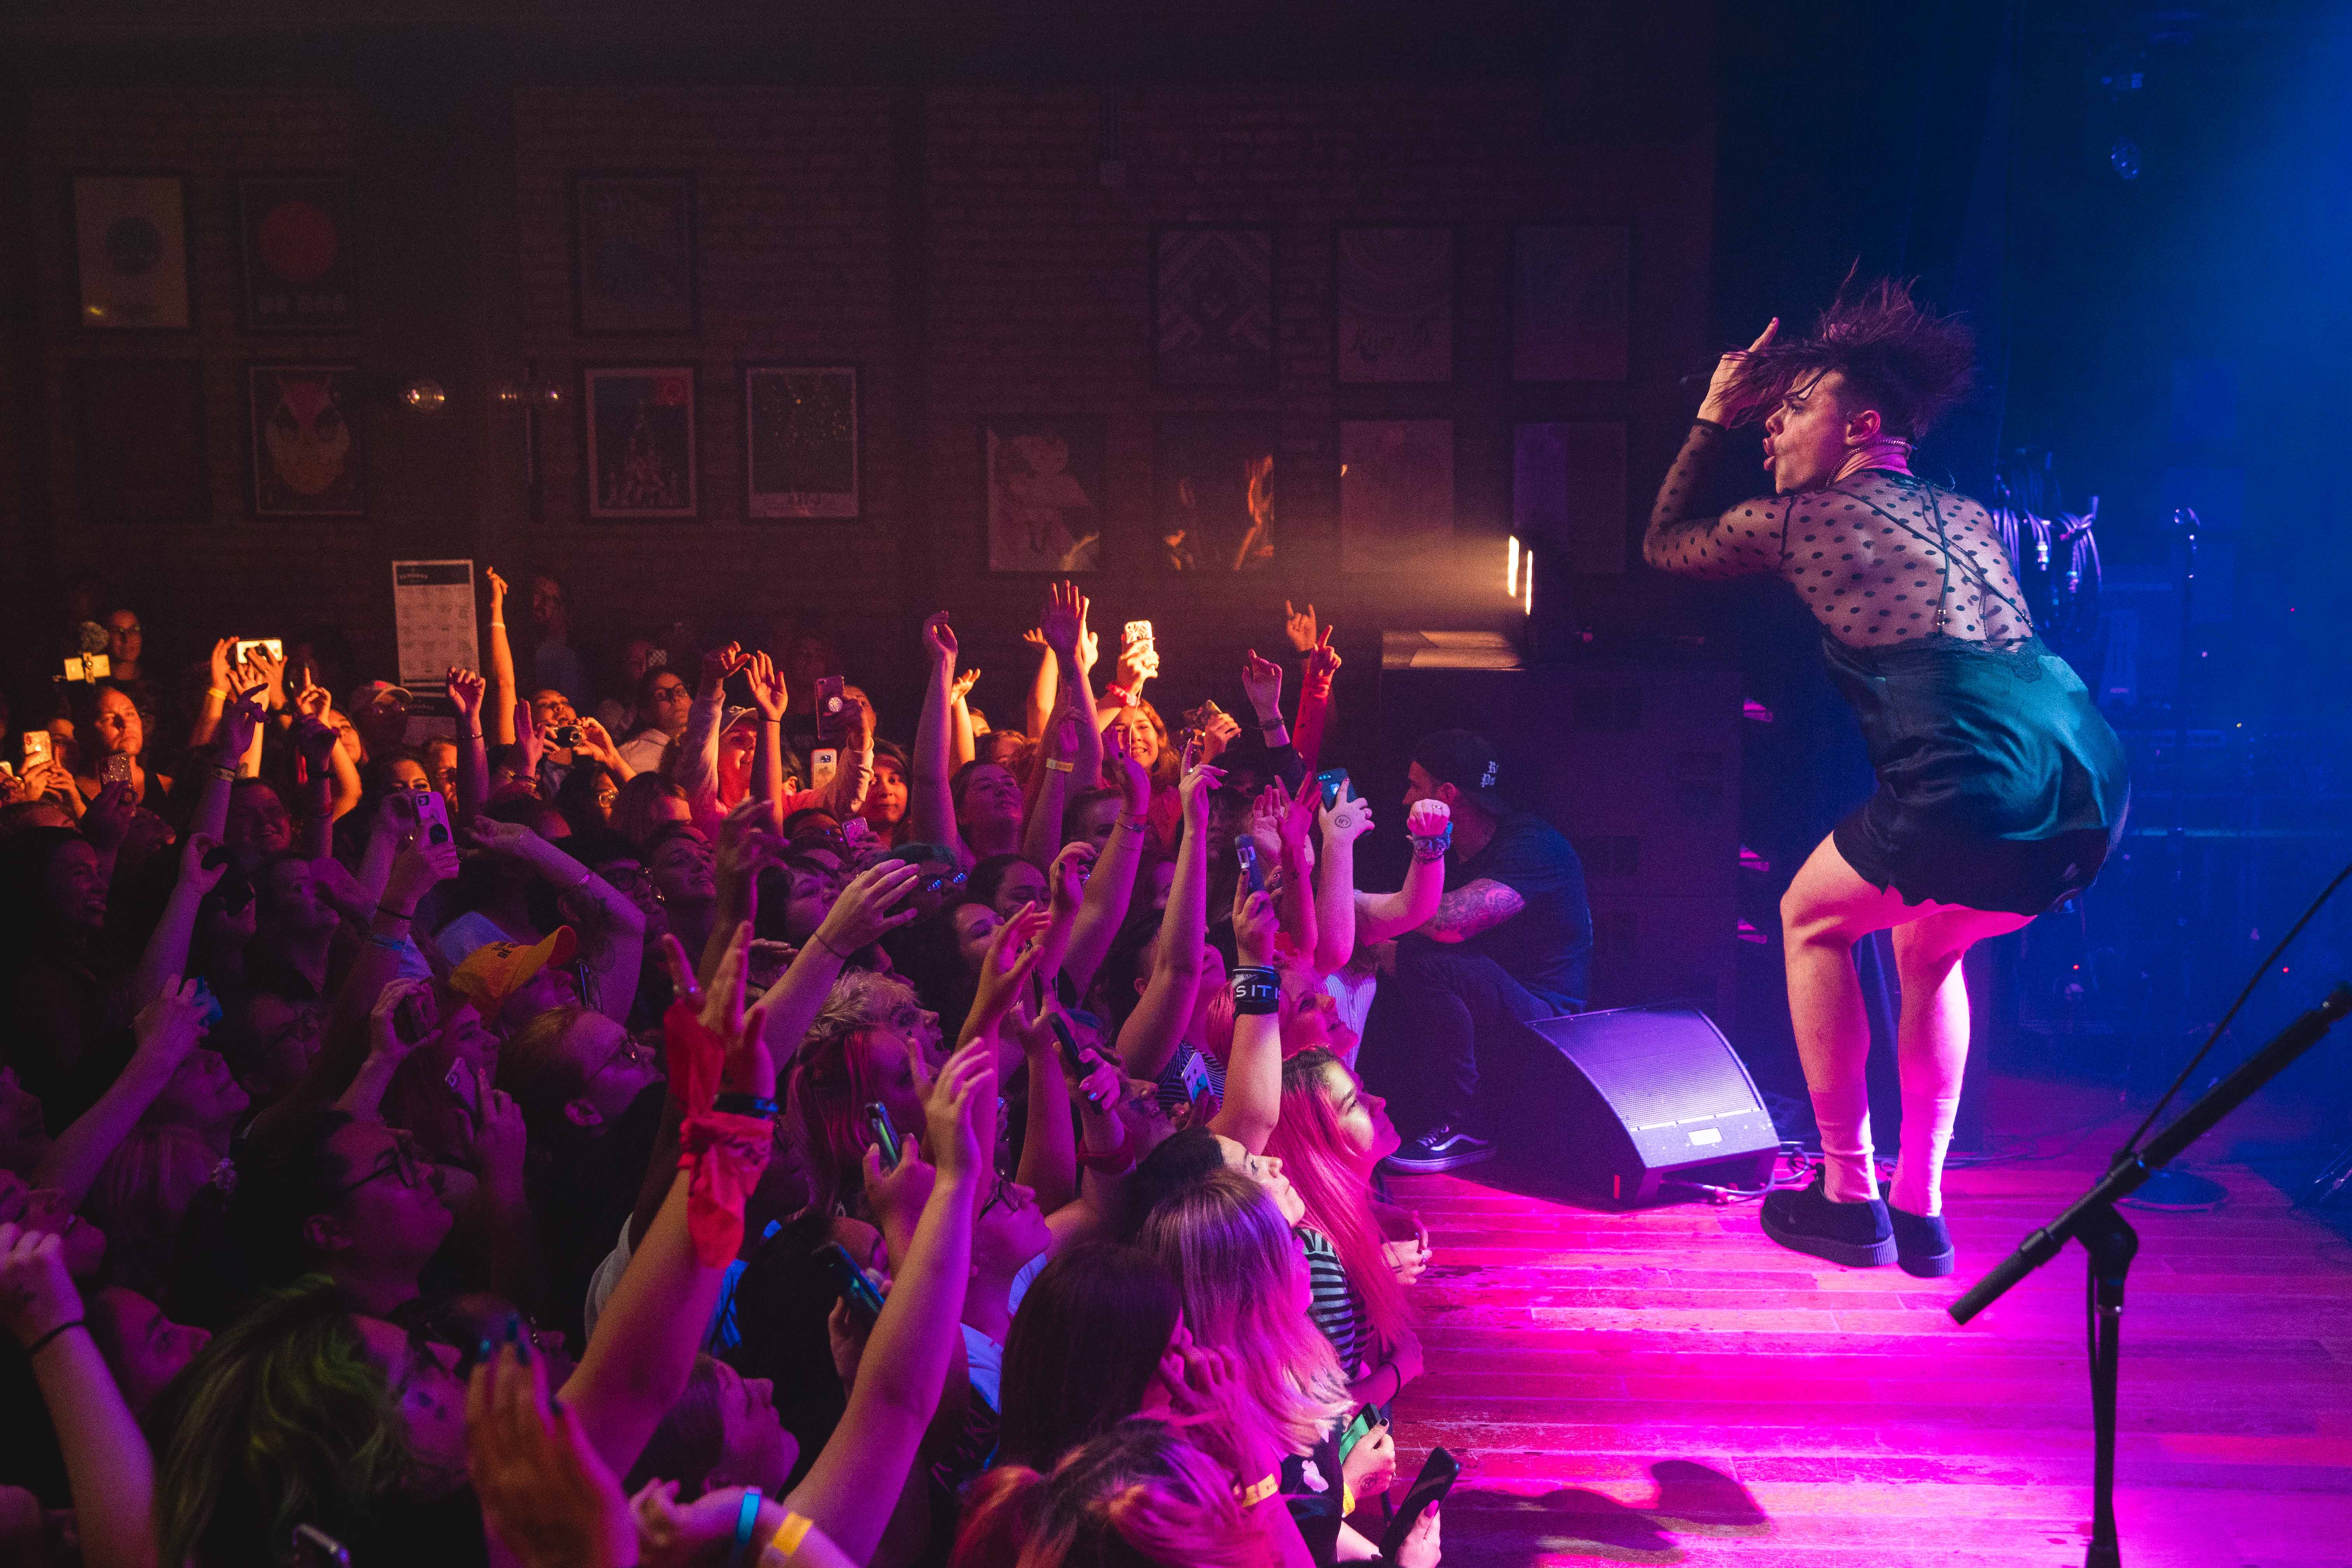 REVIEW: YUNGBLUD gives a wild performance with a surprise special guest